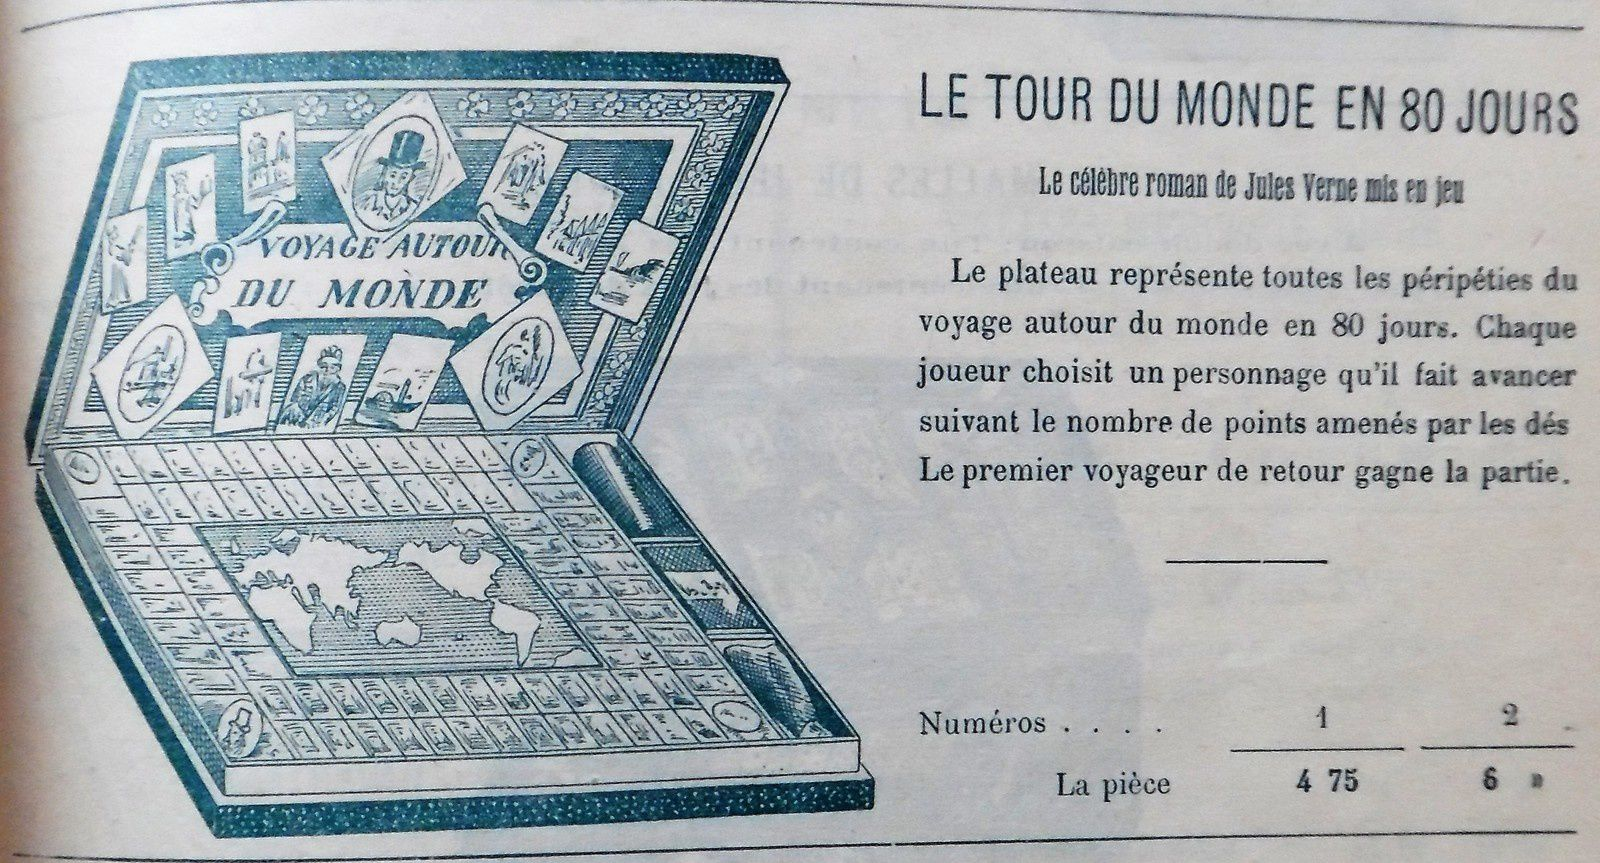 le tour du monde en 80 jours, catalogue MD